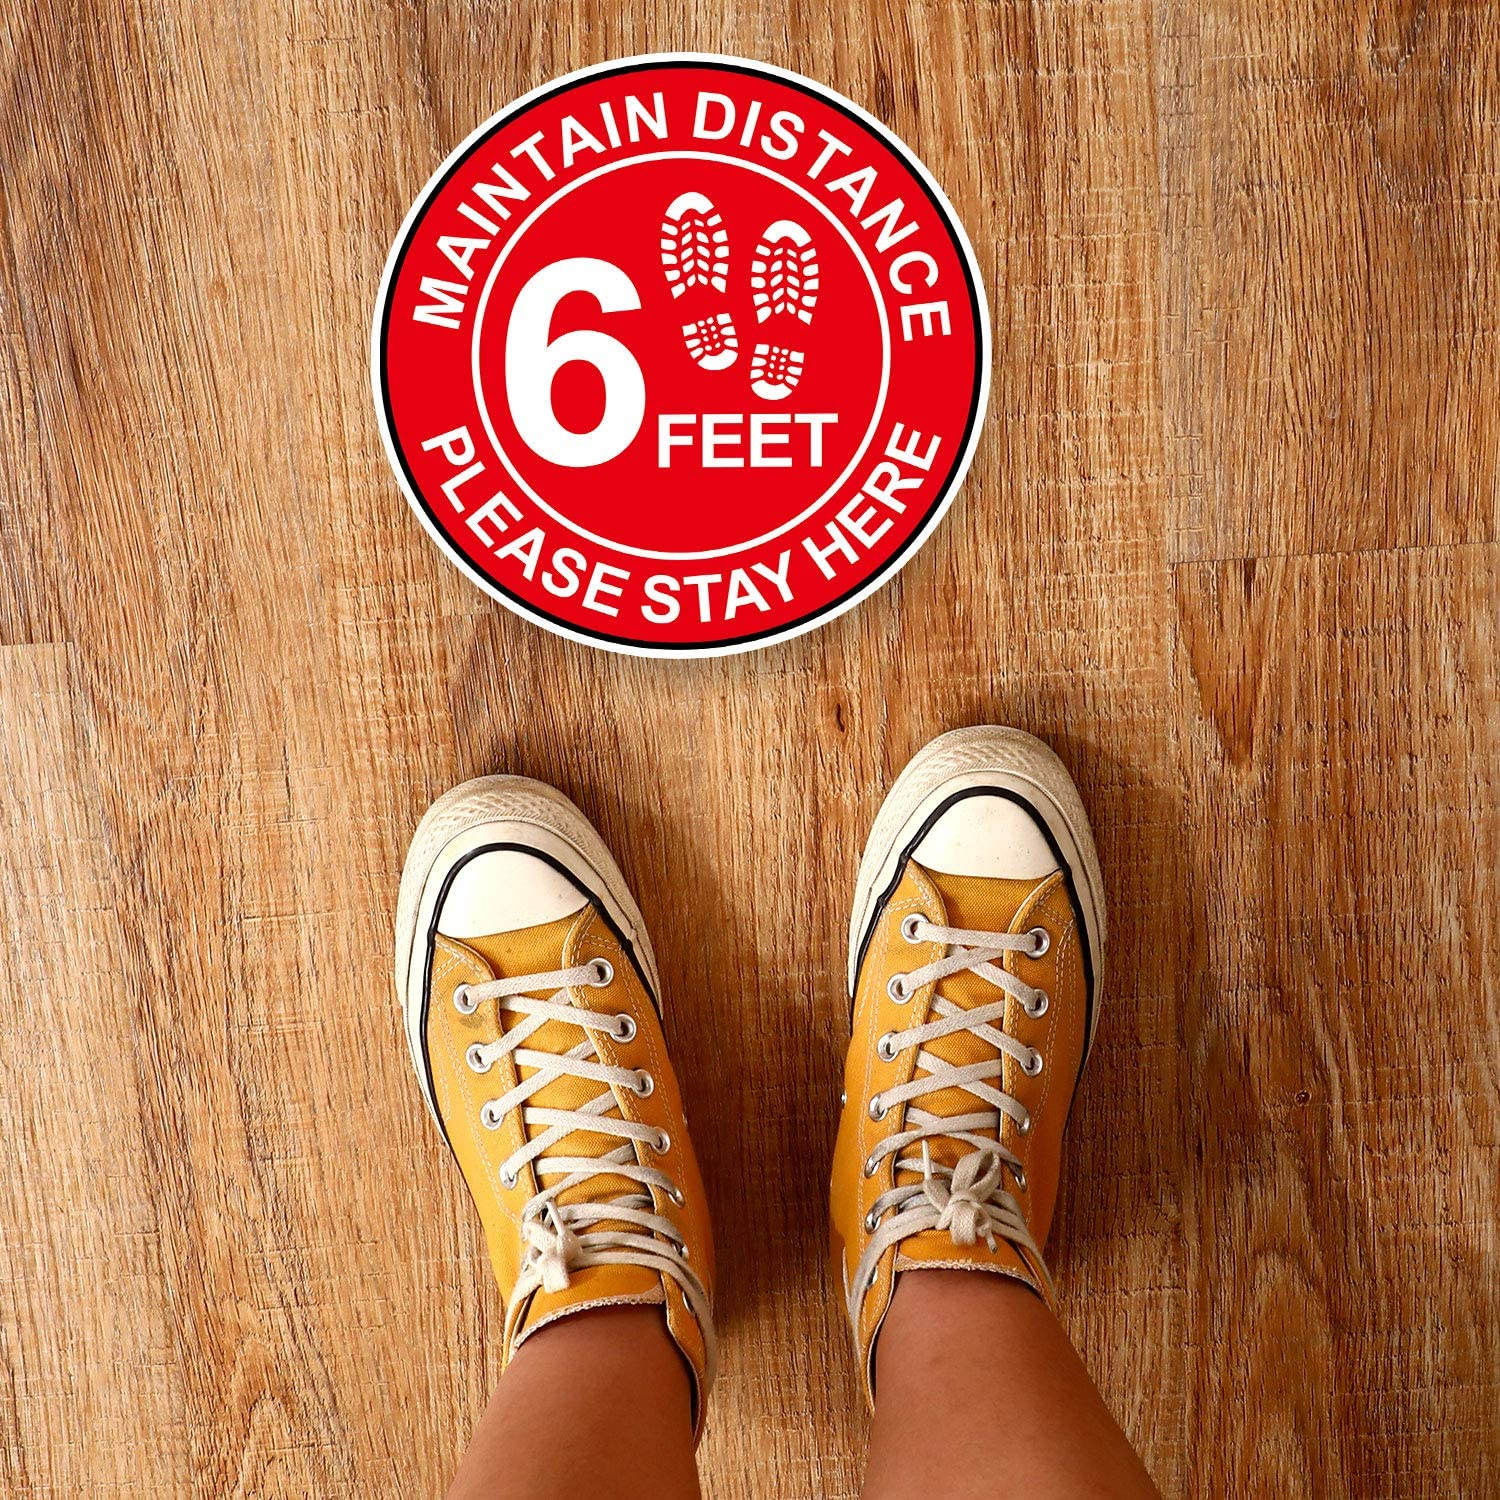 Supermarket Stand Decal 9 Safety Maintain 6 Feet Floor Sign Marker/Stay Here Floor Label for Crowd Guidance Control Bank Blue, White 6 Feet Stickers Social Distancing Floor Decal Stickers